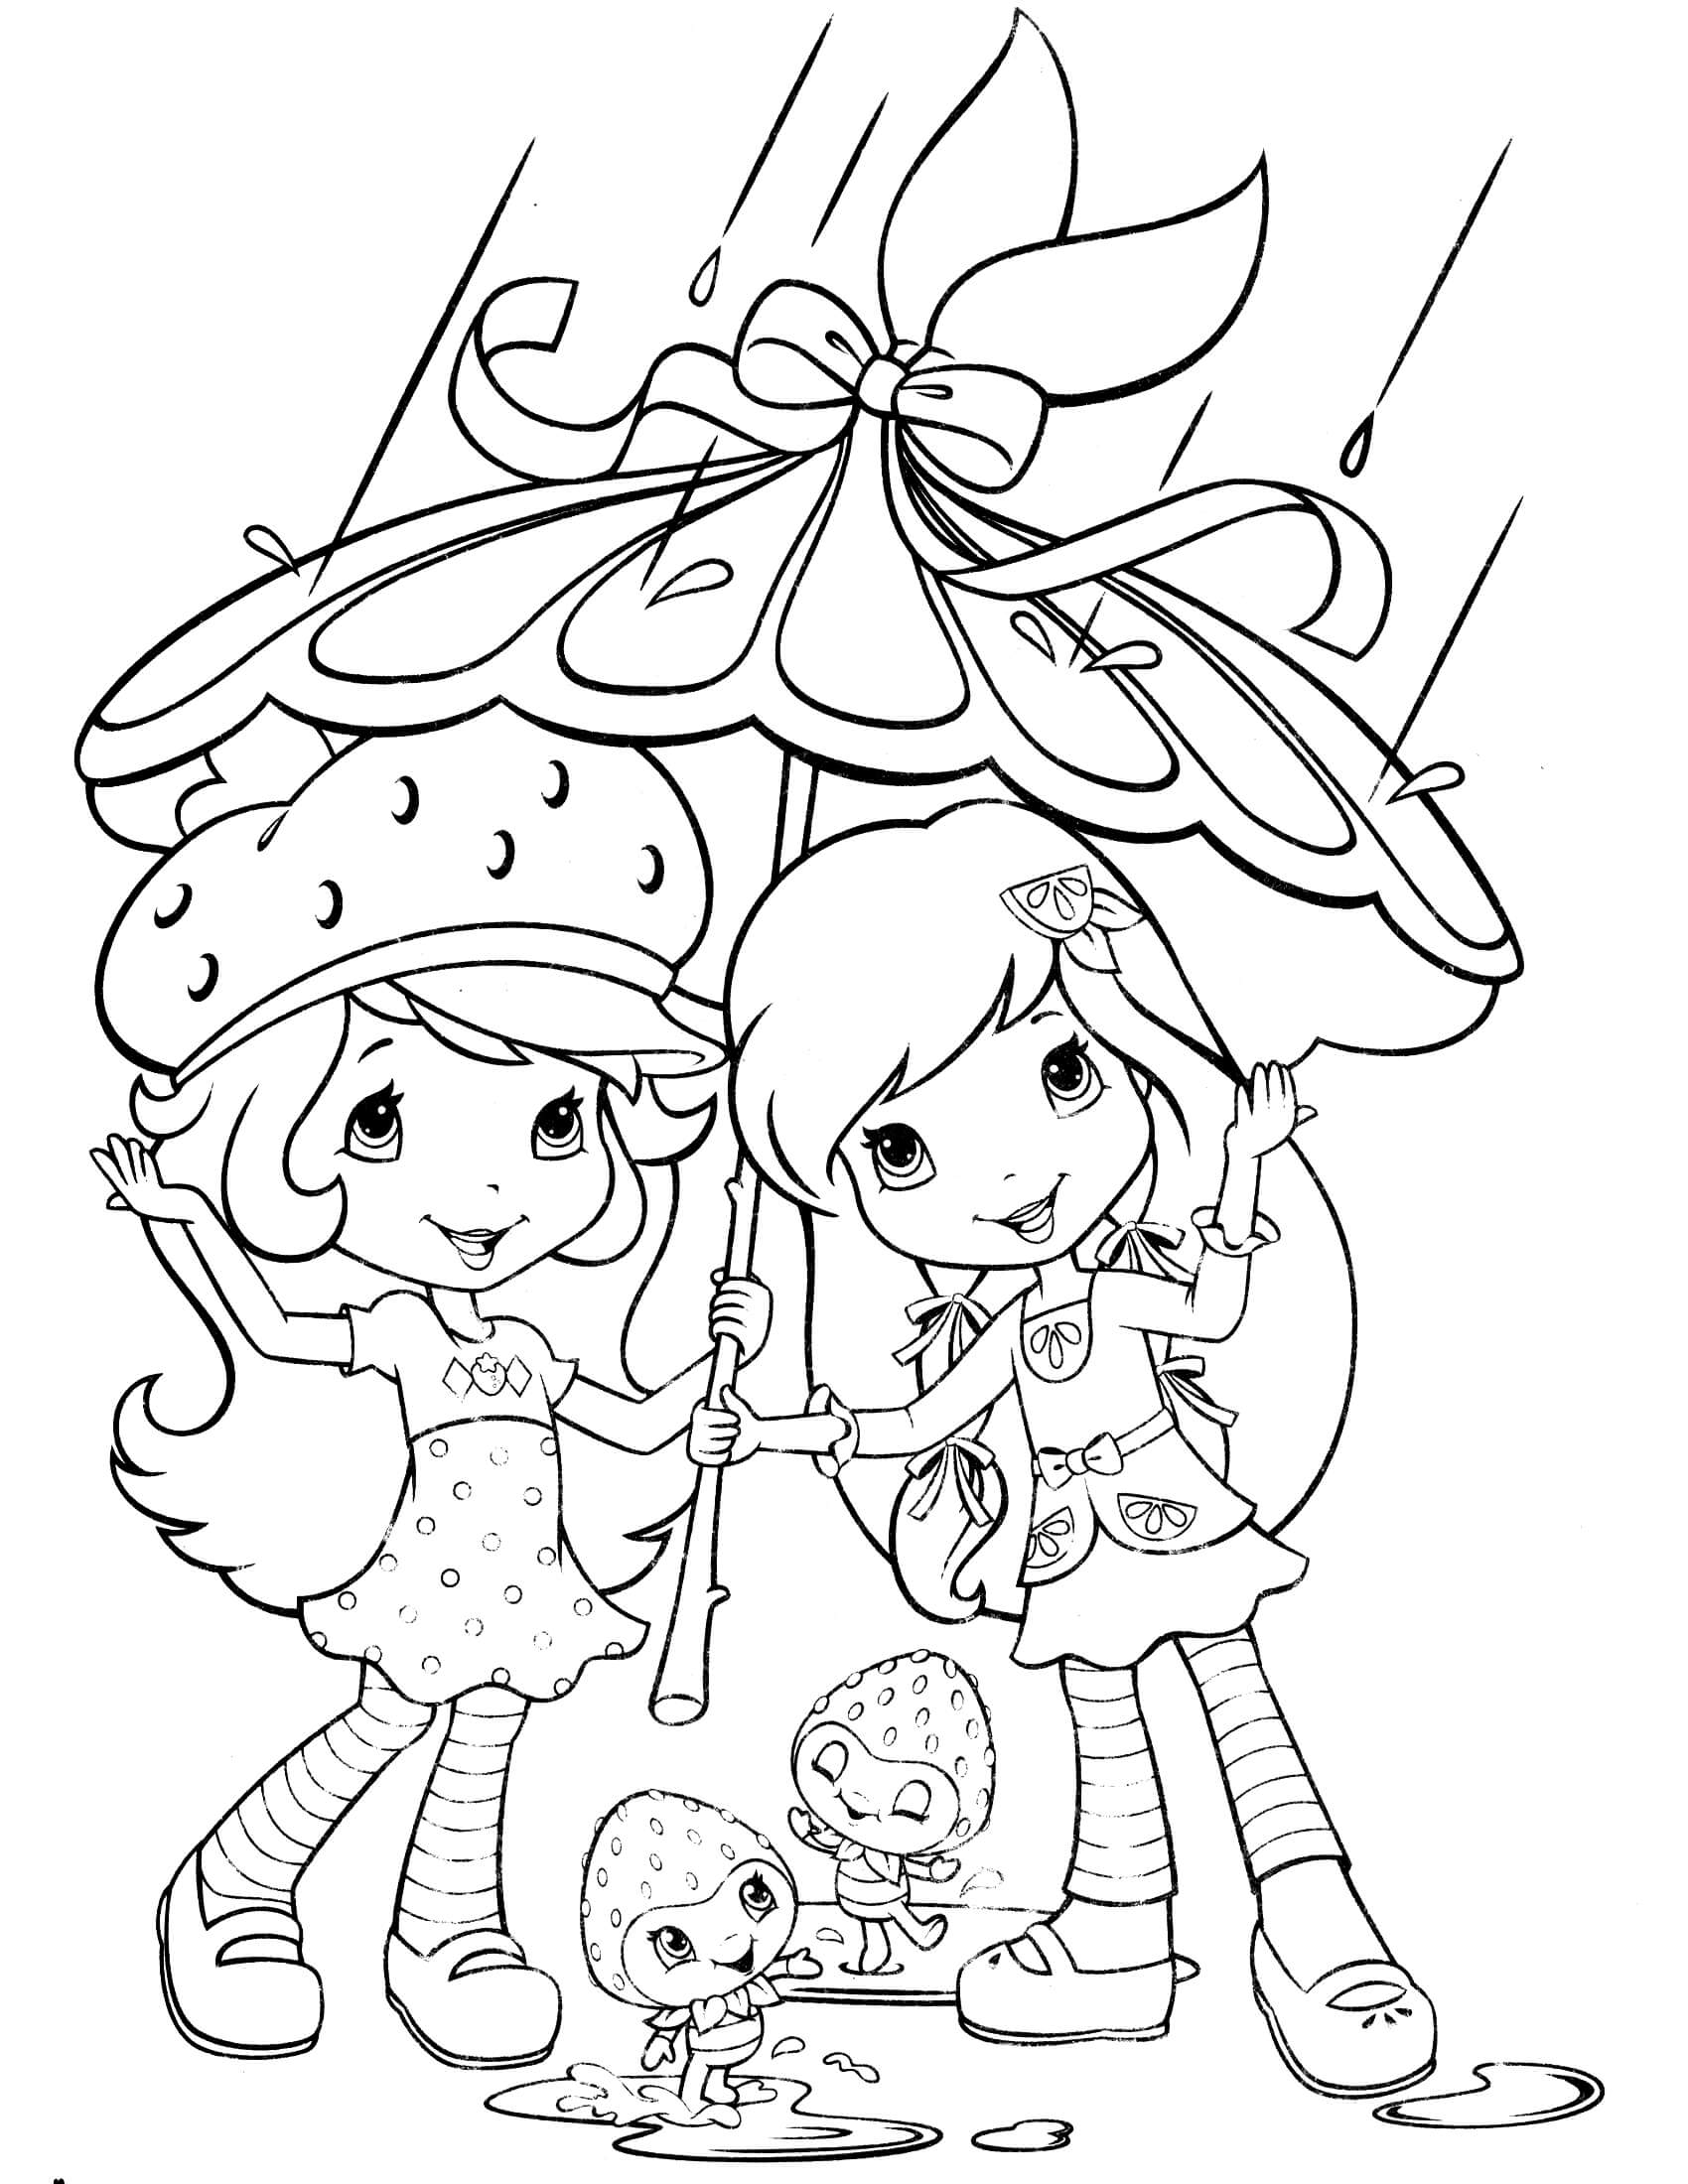 strawberry shortcake coloring pages - strawberry shortcake coloring page 20